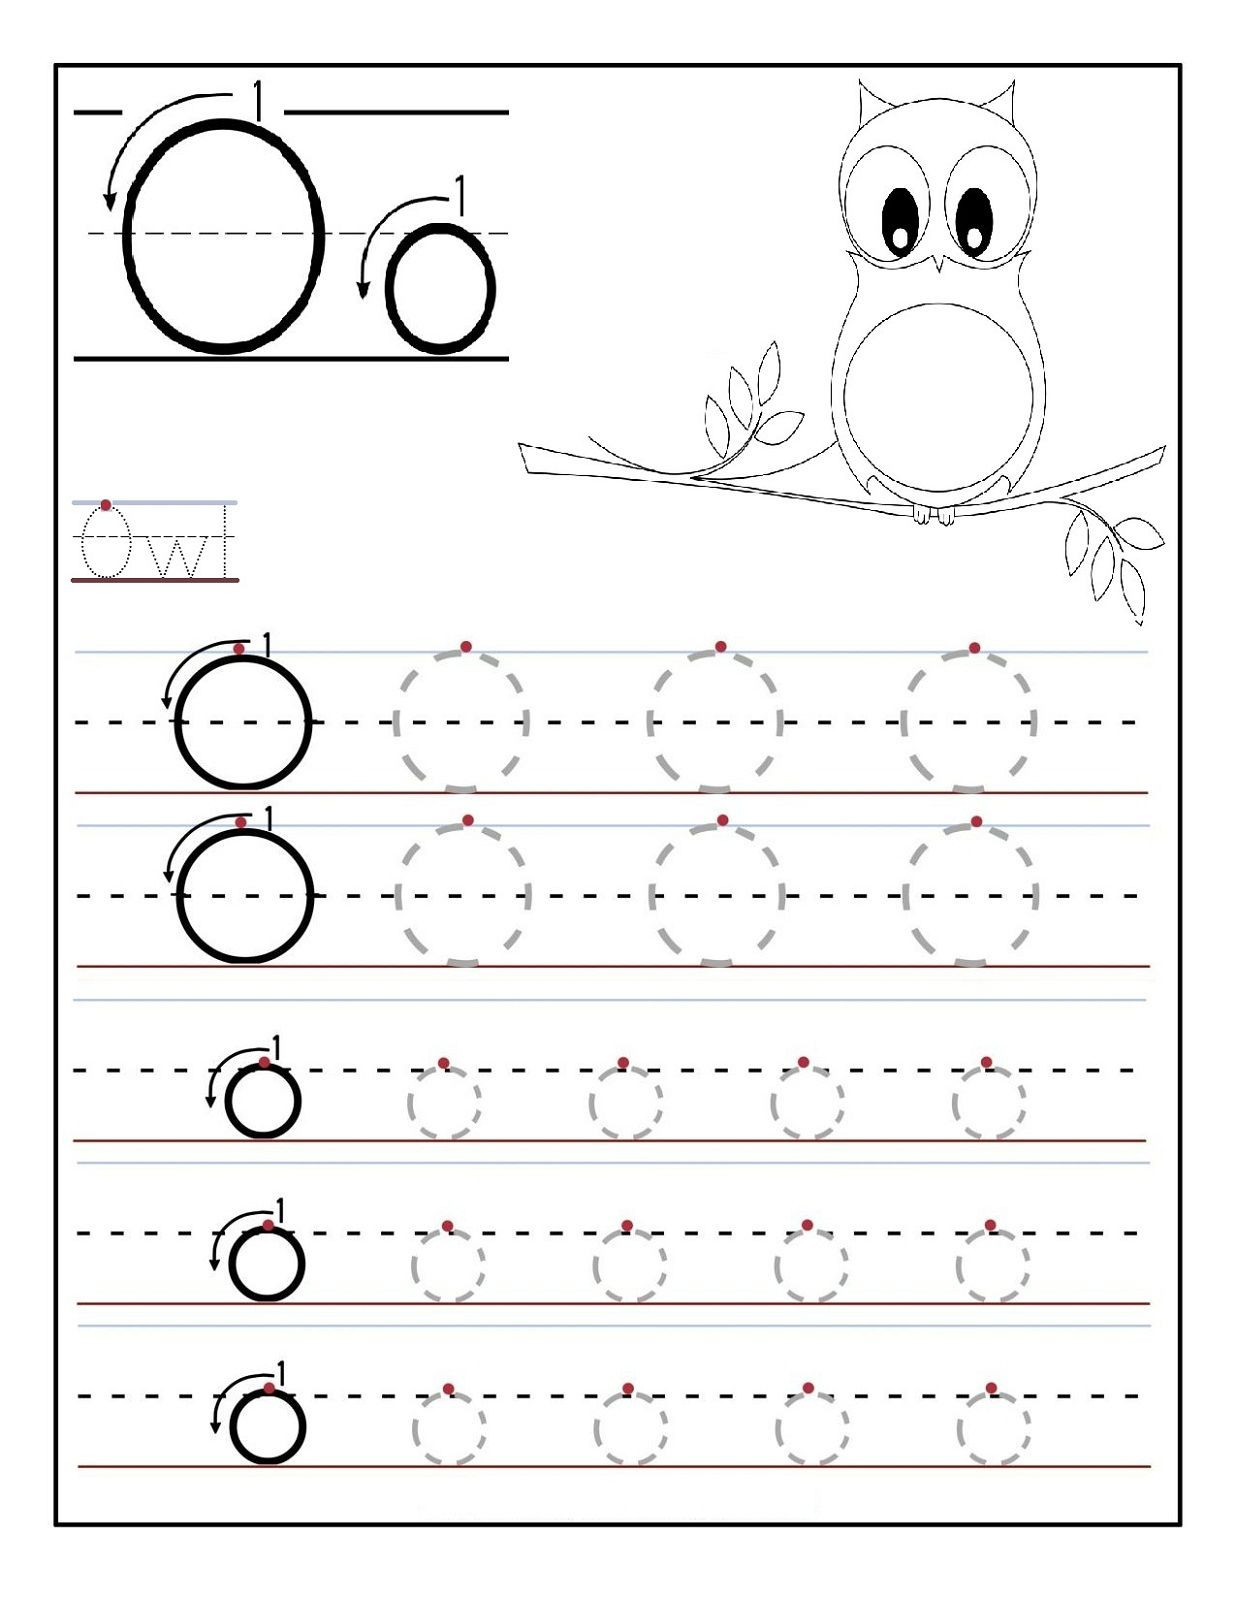 Letter O Worksheets for Preschool Letter O Worksheets for Preschool